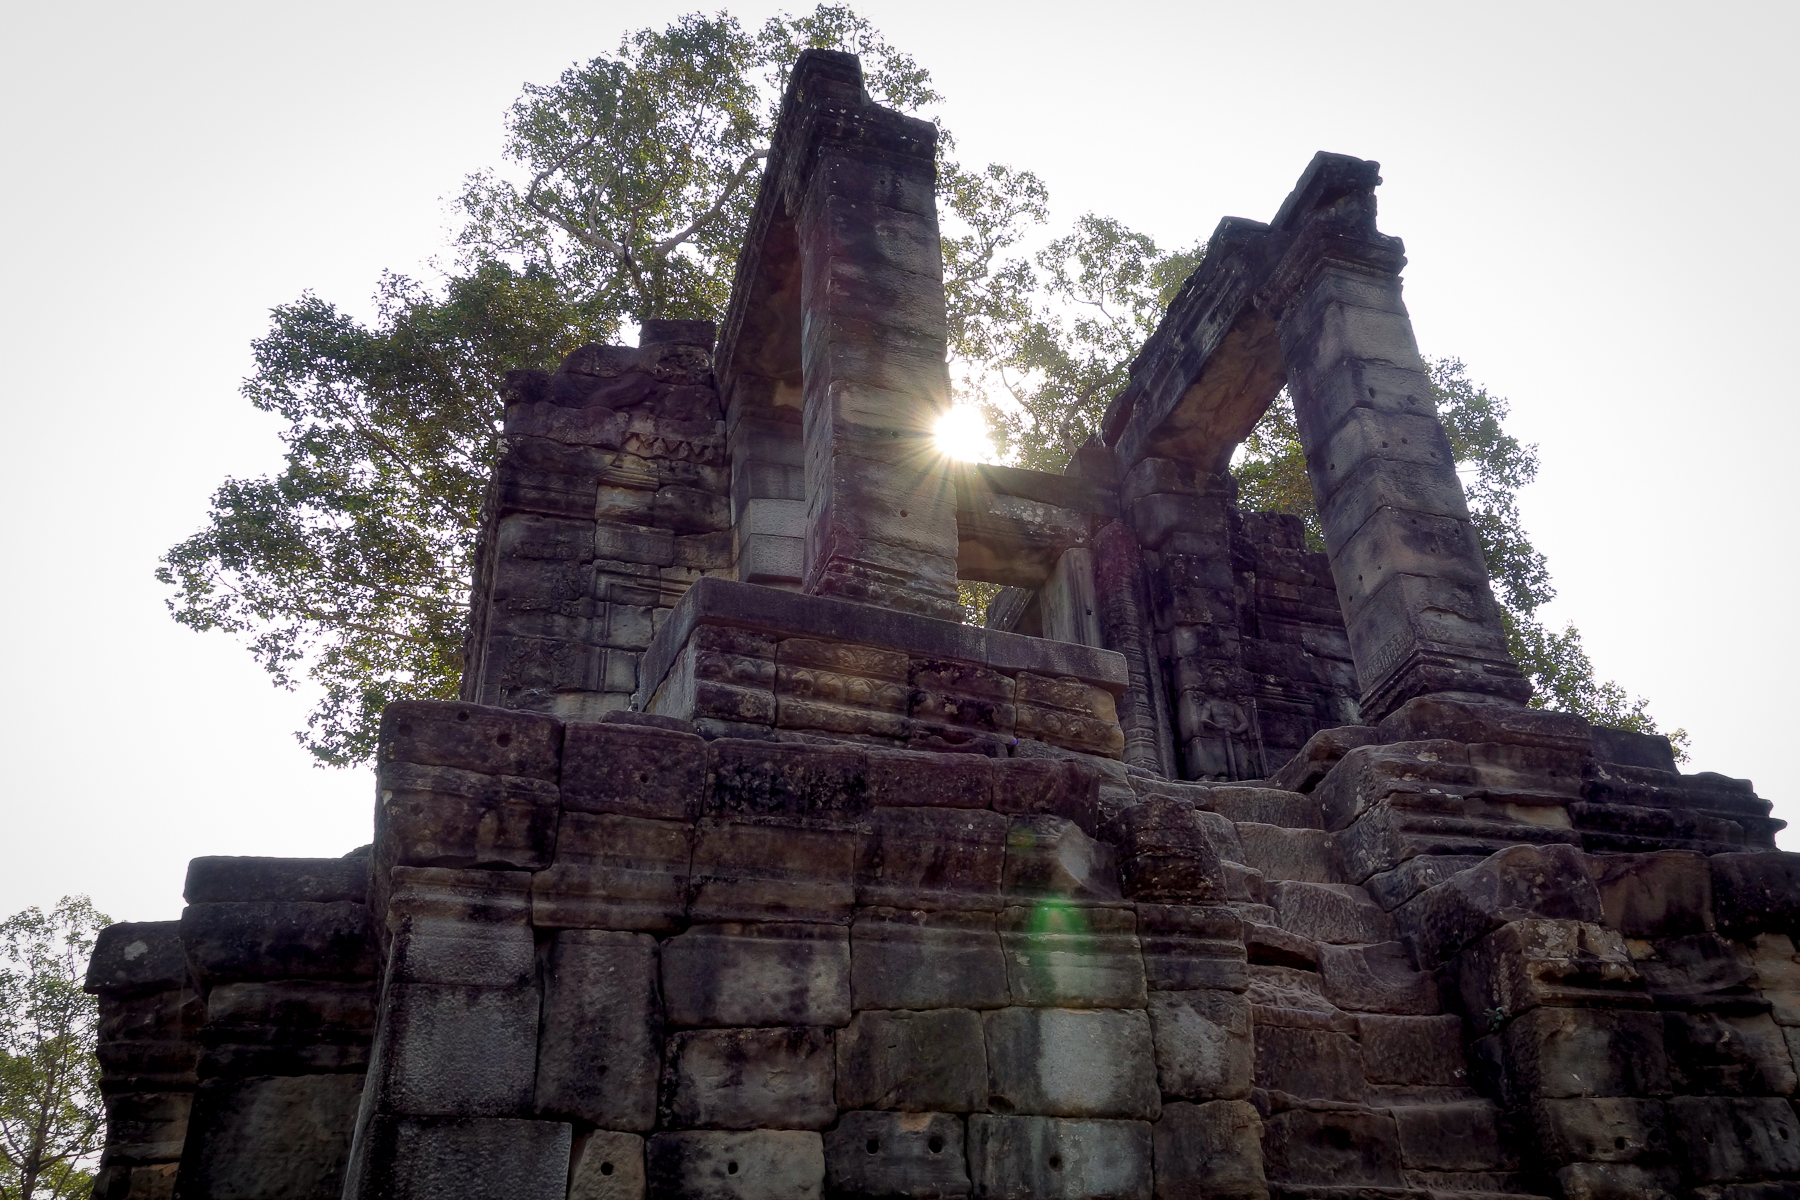 In Bayon